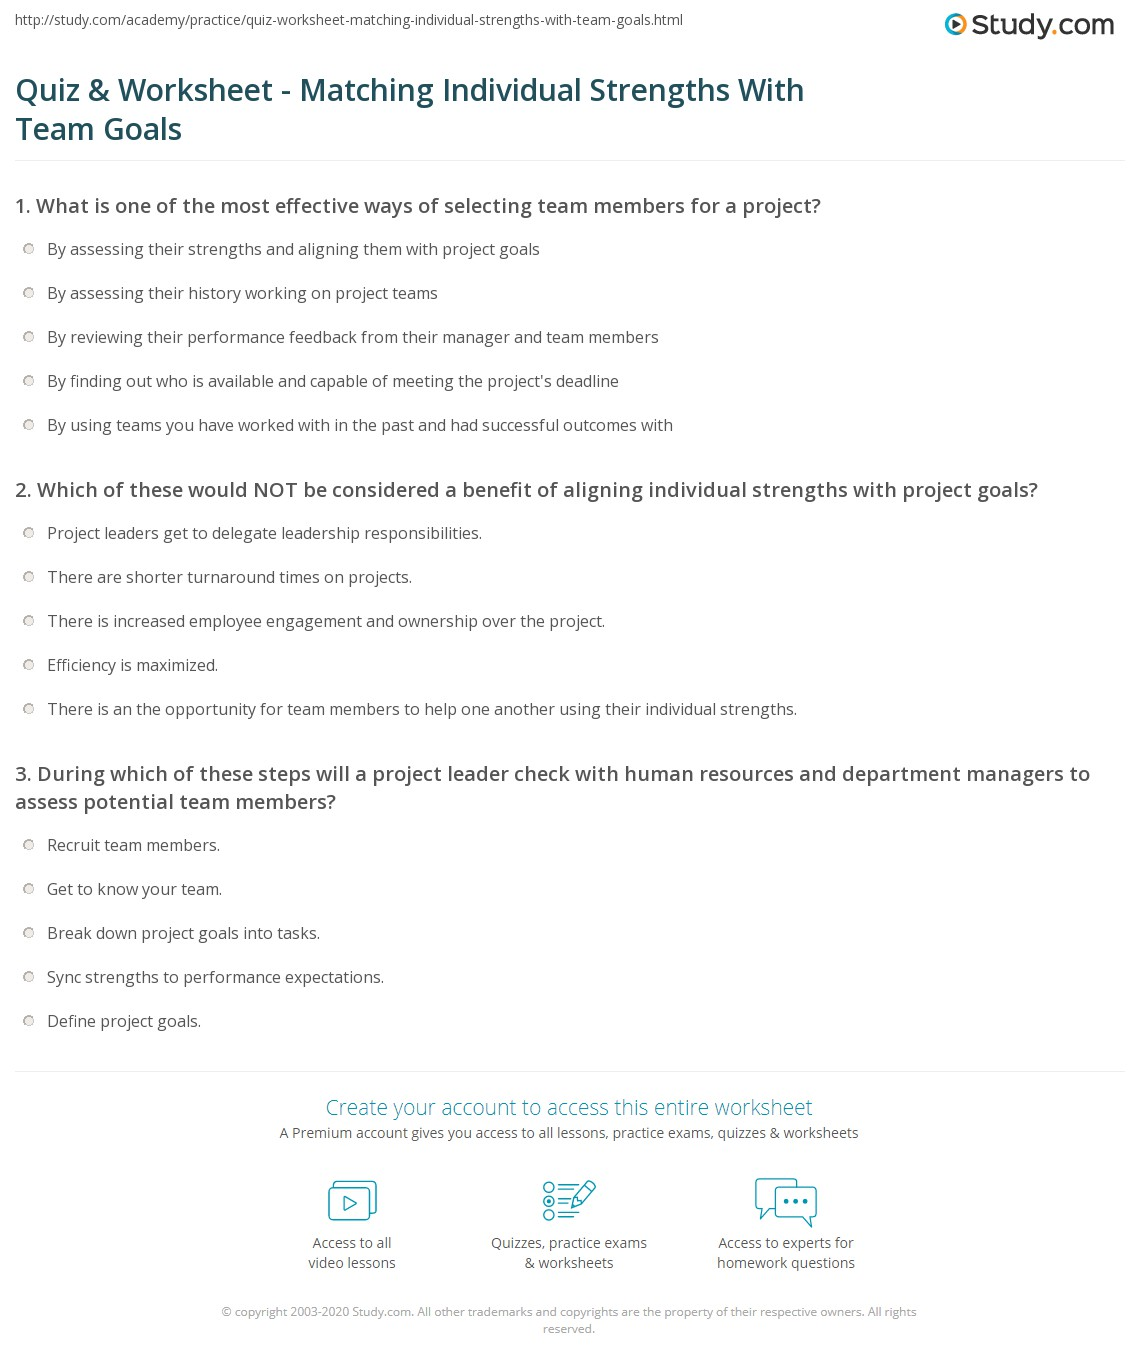 print aligning individual strengths with team goals worksheet